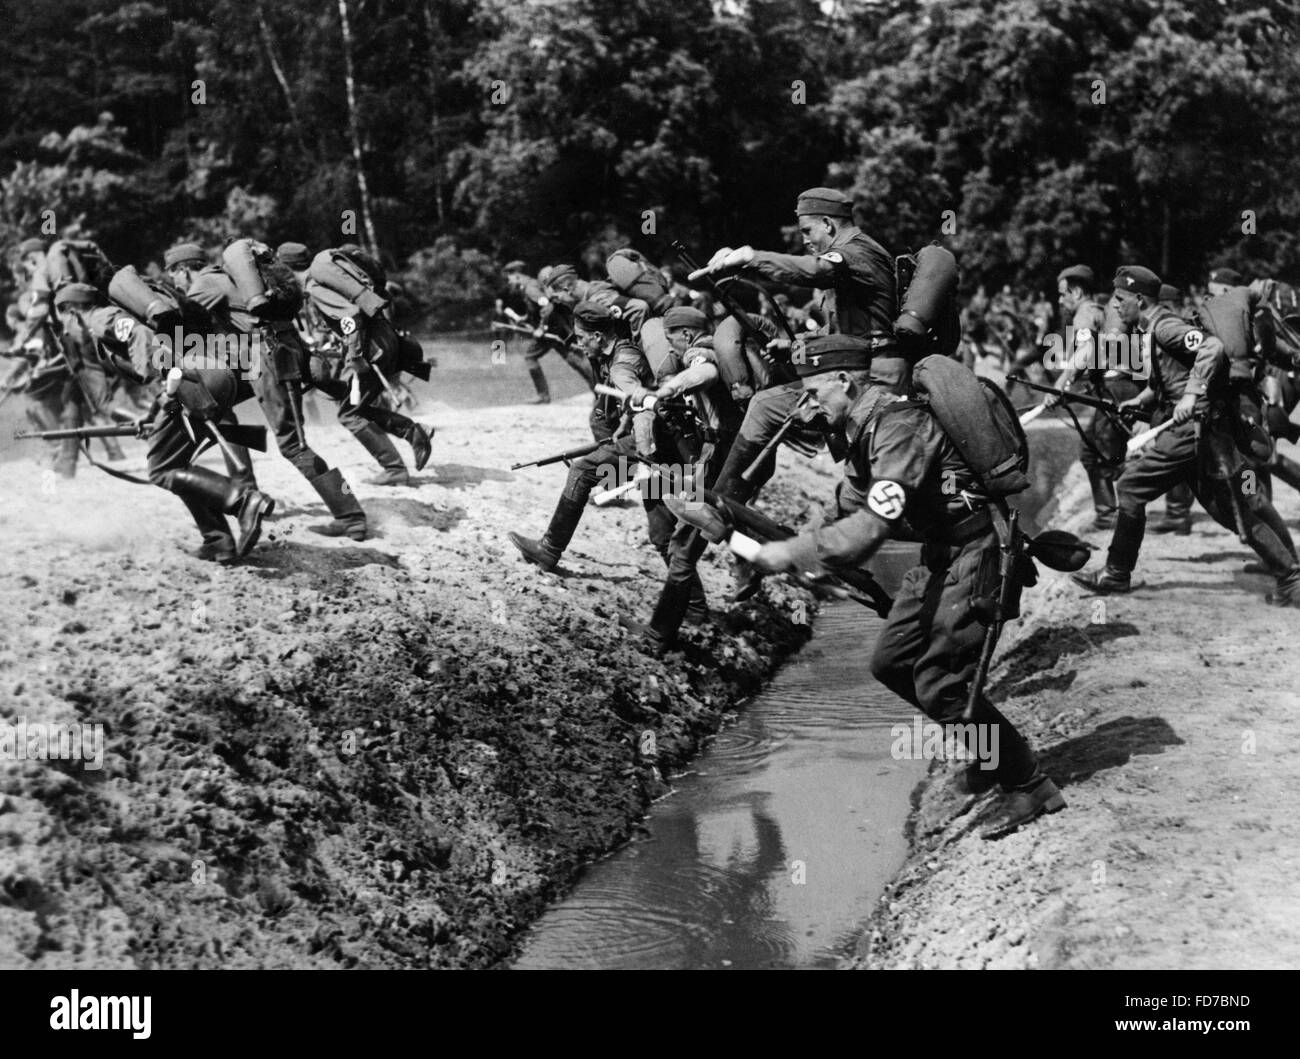 Steeplechase at the SA Reich sports competition, 1938 - Stock Image